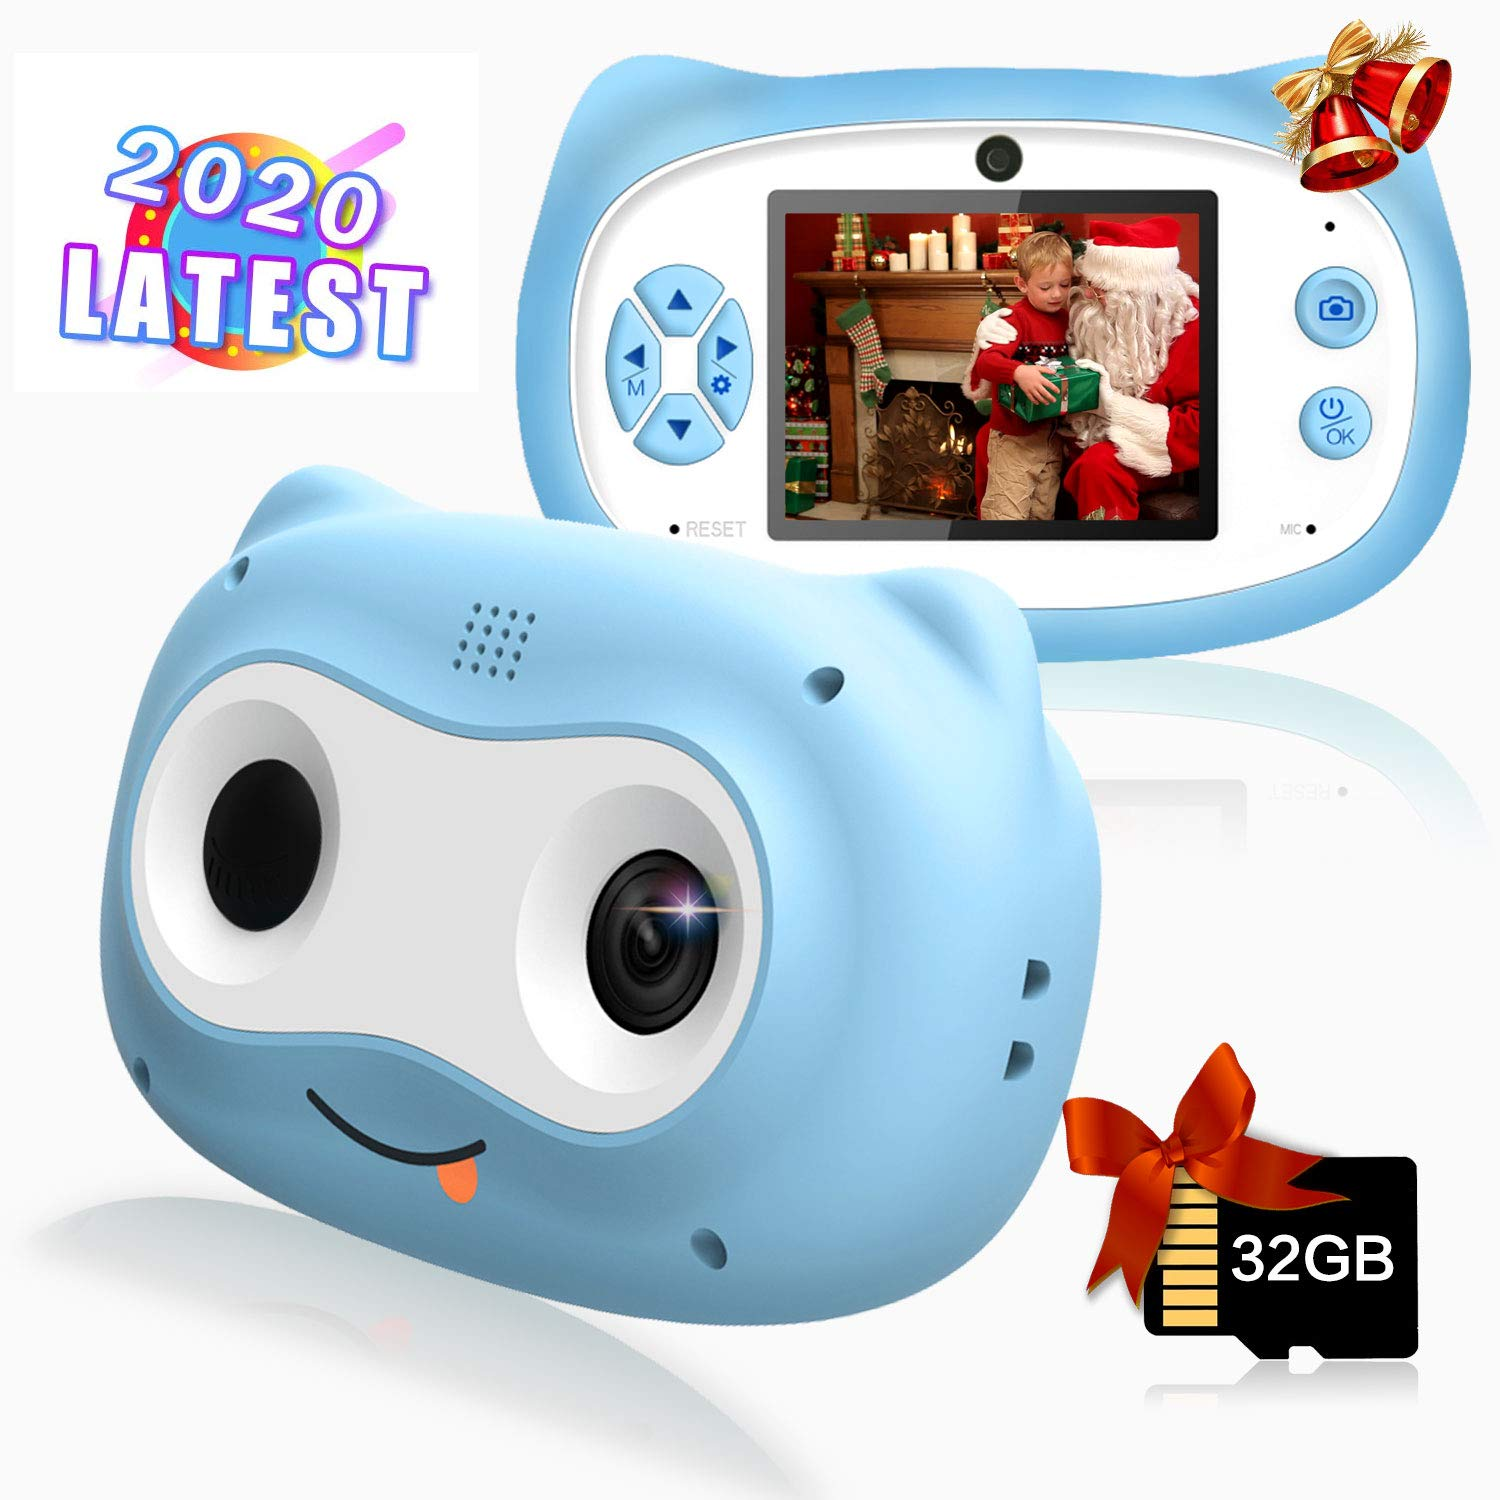 Kids Camera, 8 MP Digital Camera for Kids 3-10 Years Old, 1080P HD Shockproof Rechargeable Video Camera with 32GB Memory Card for Girls Boys Toddler Indoor Outdoor Travel, Blue